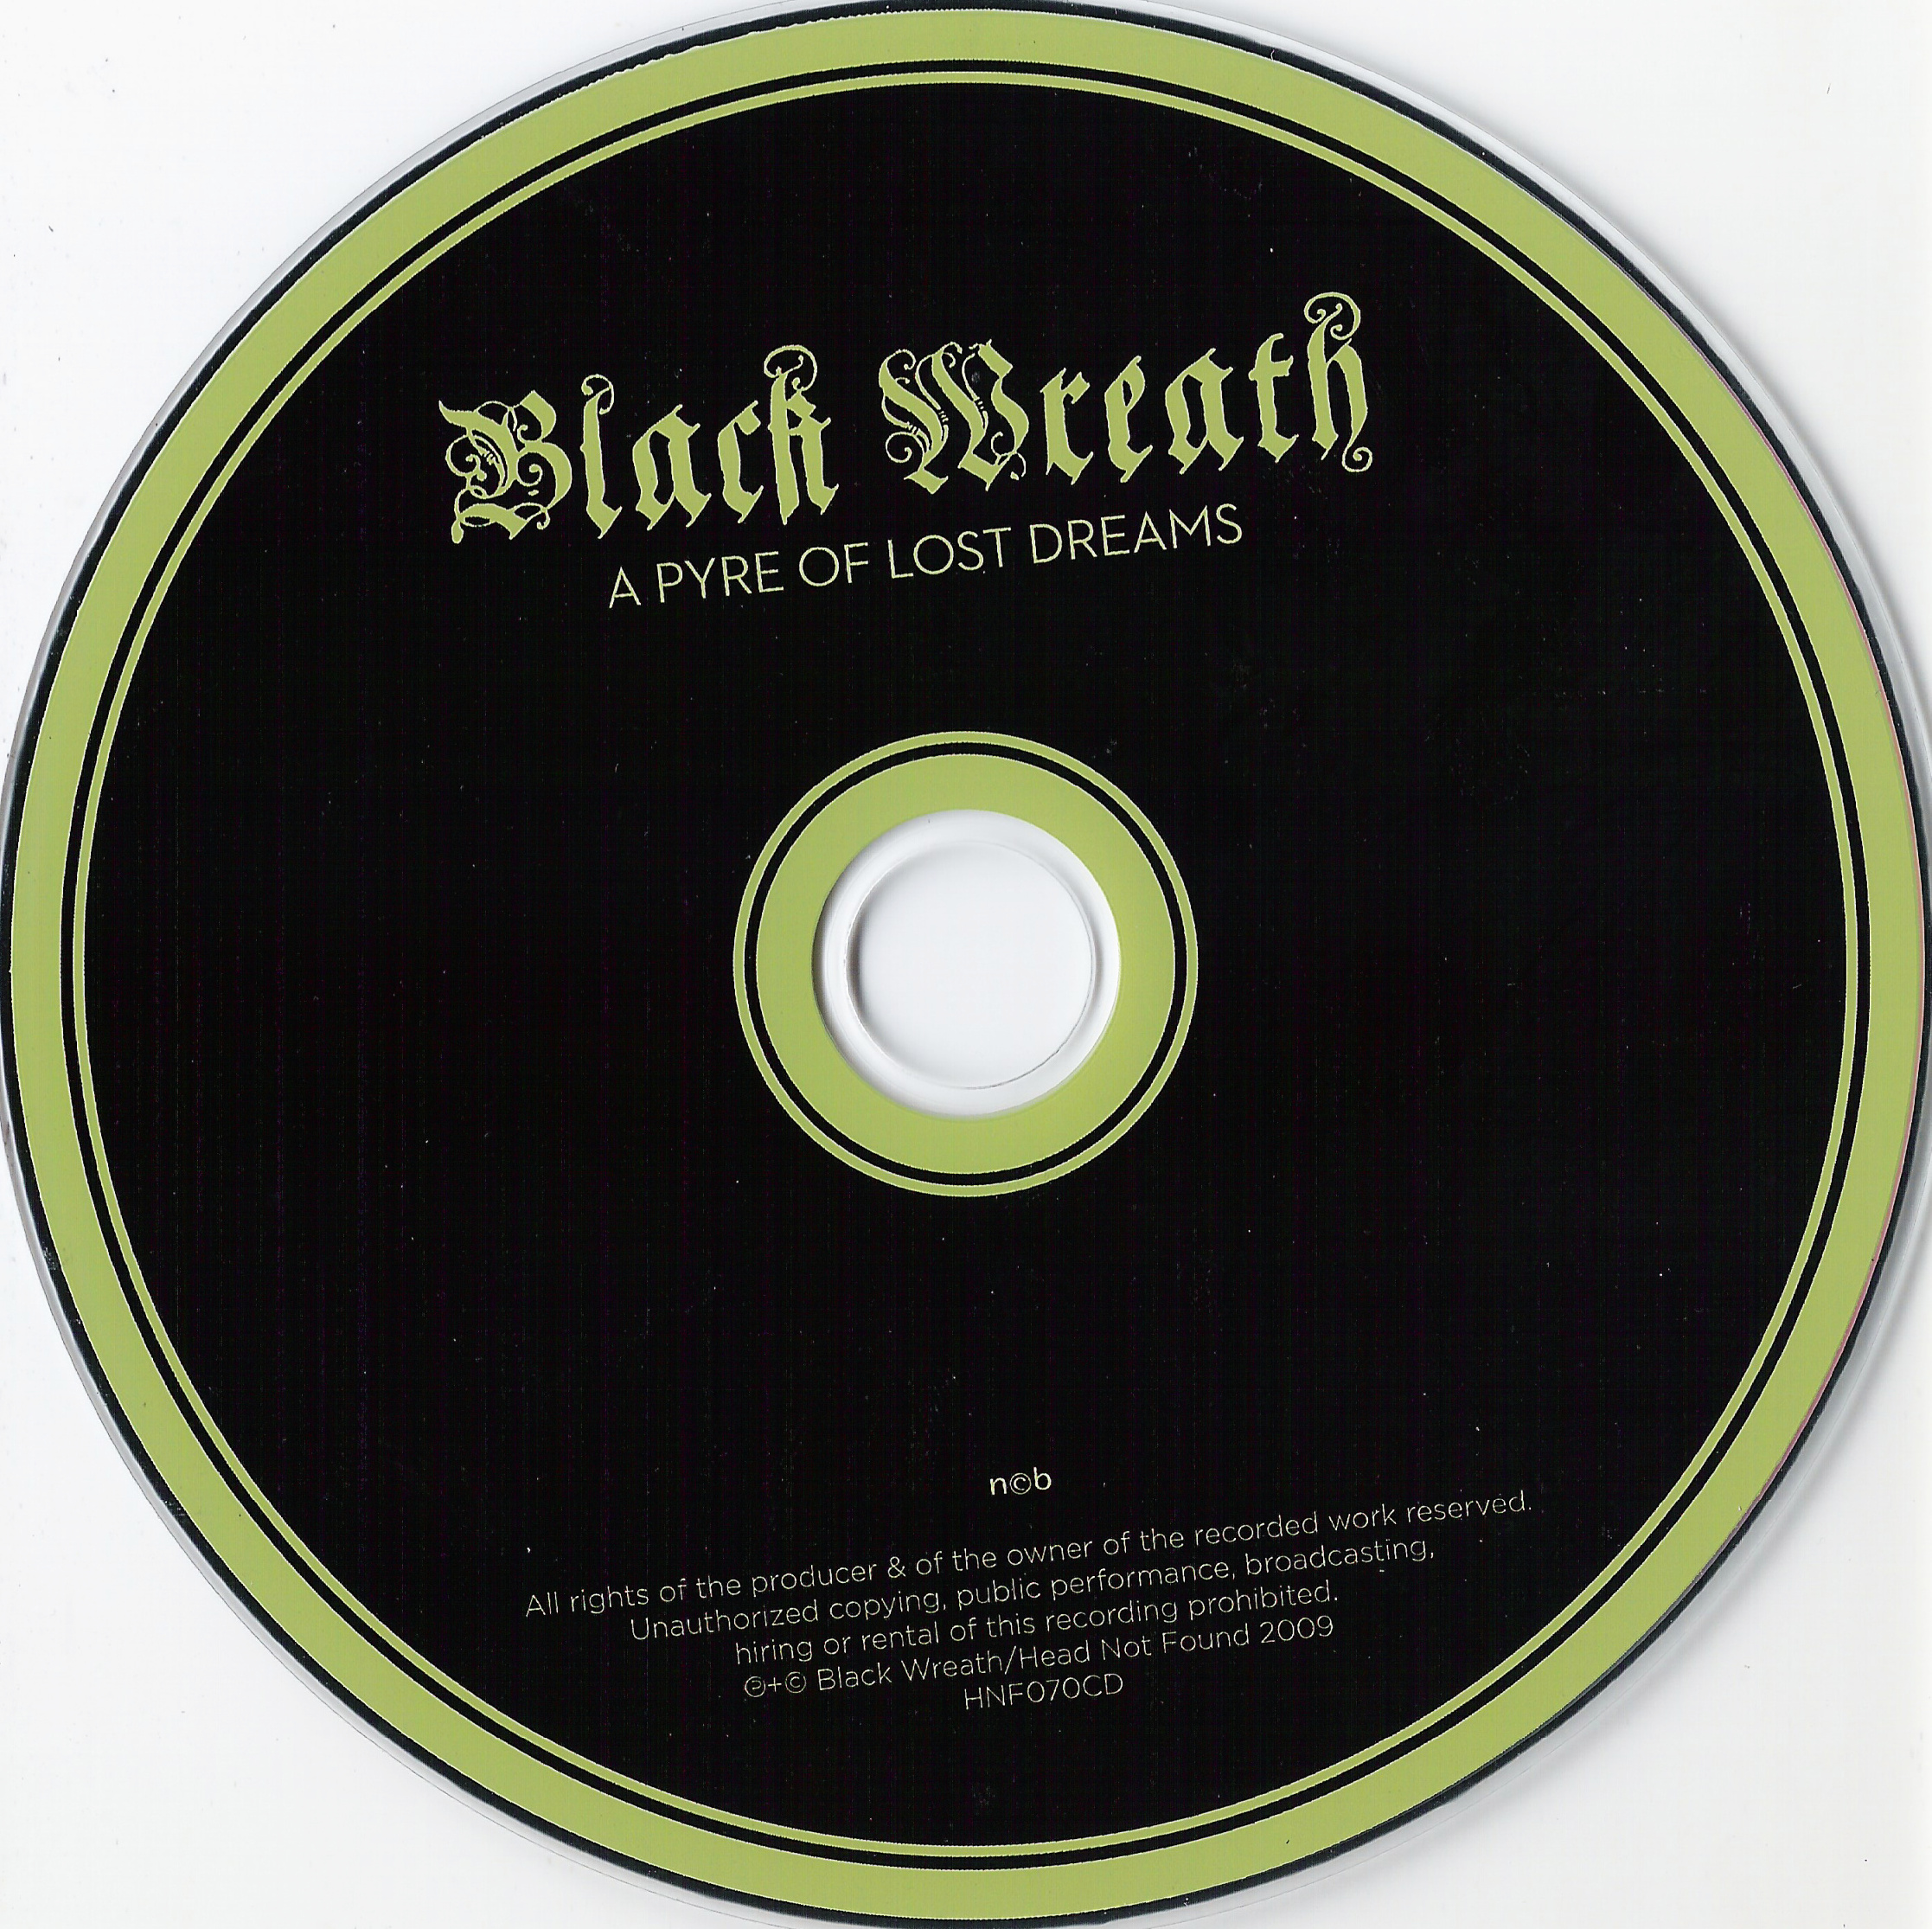 Black Wreath - A Pyre Of Lost Dreams - Booklet (5-5)